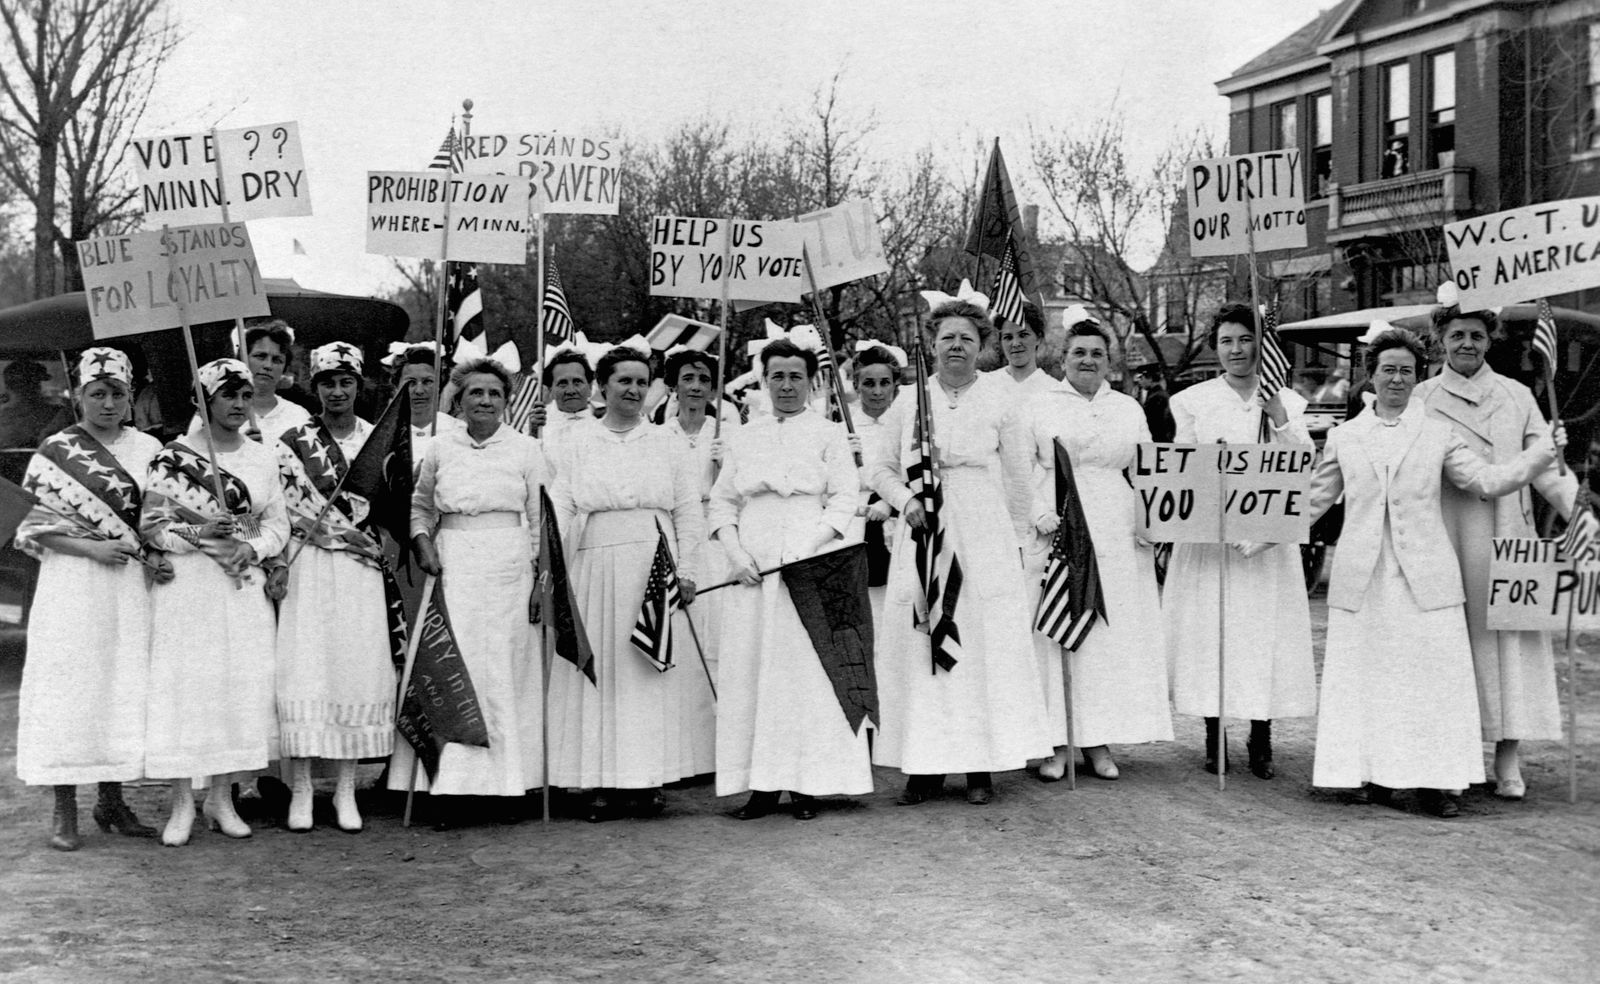 Prohibition - Women Picketing for Prohibition